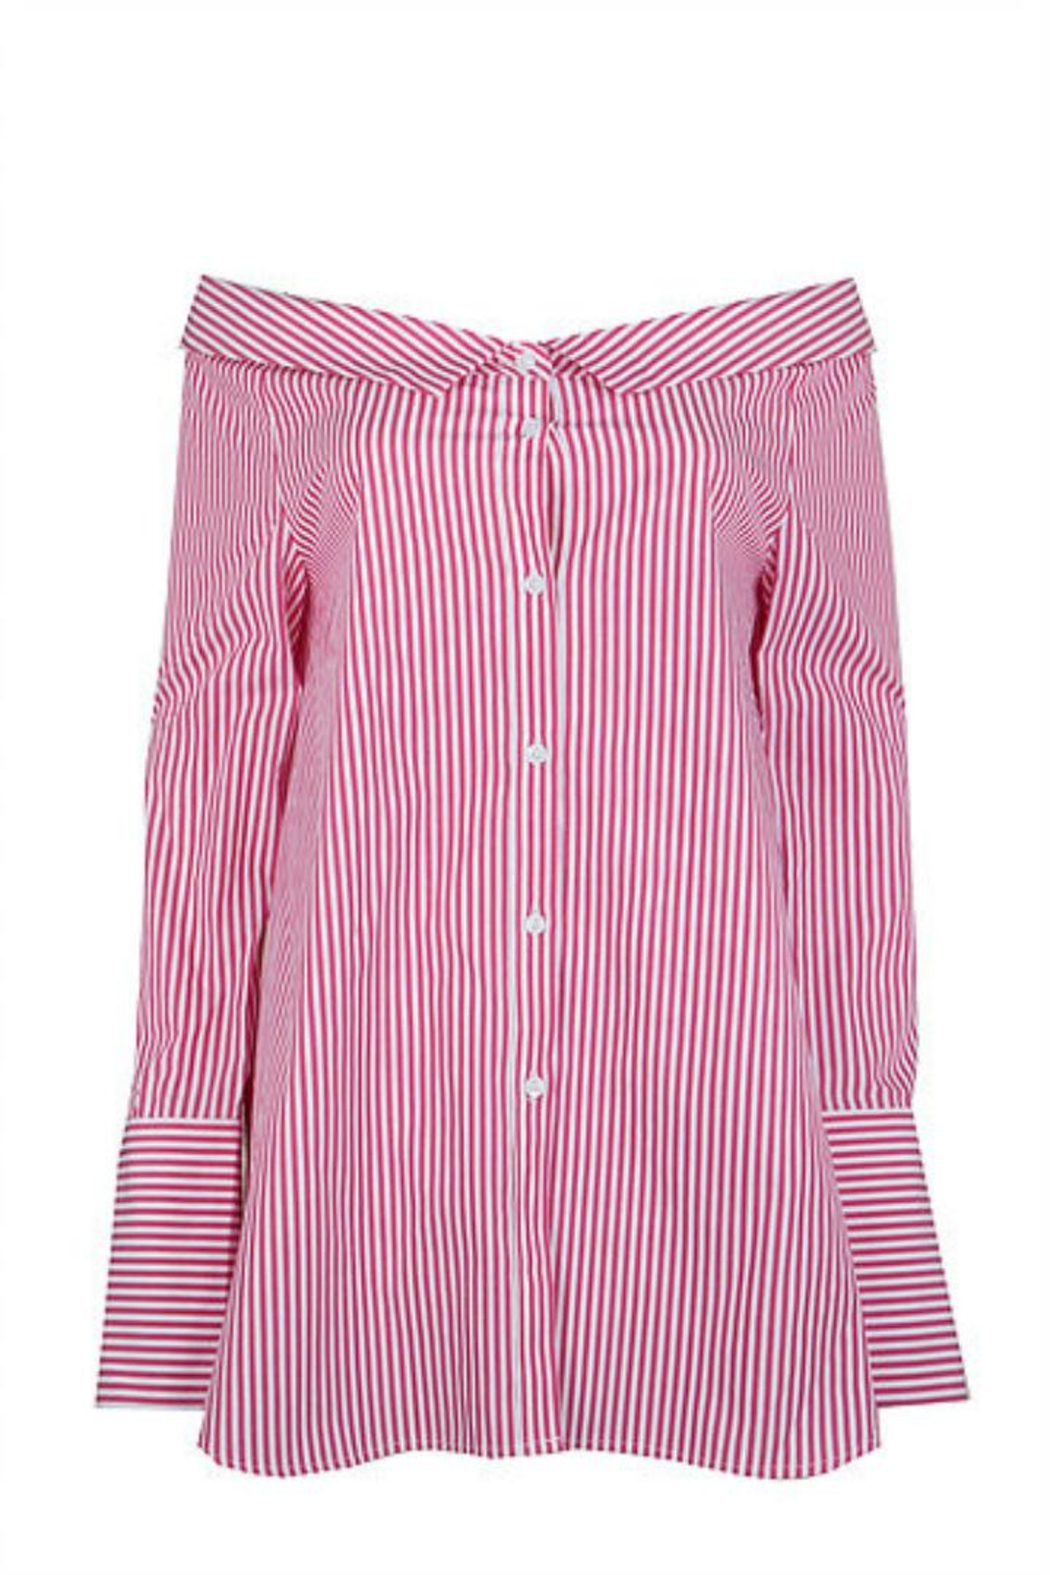 Jovonna  Striped Off-Shoulder Blouse - Main Image